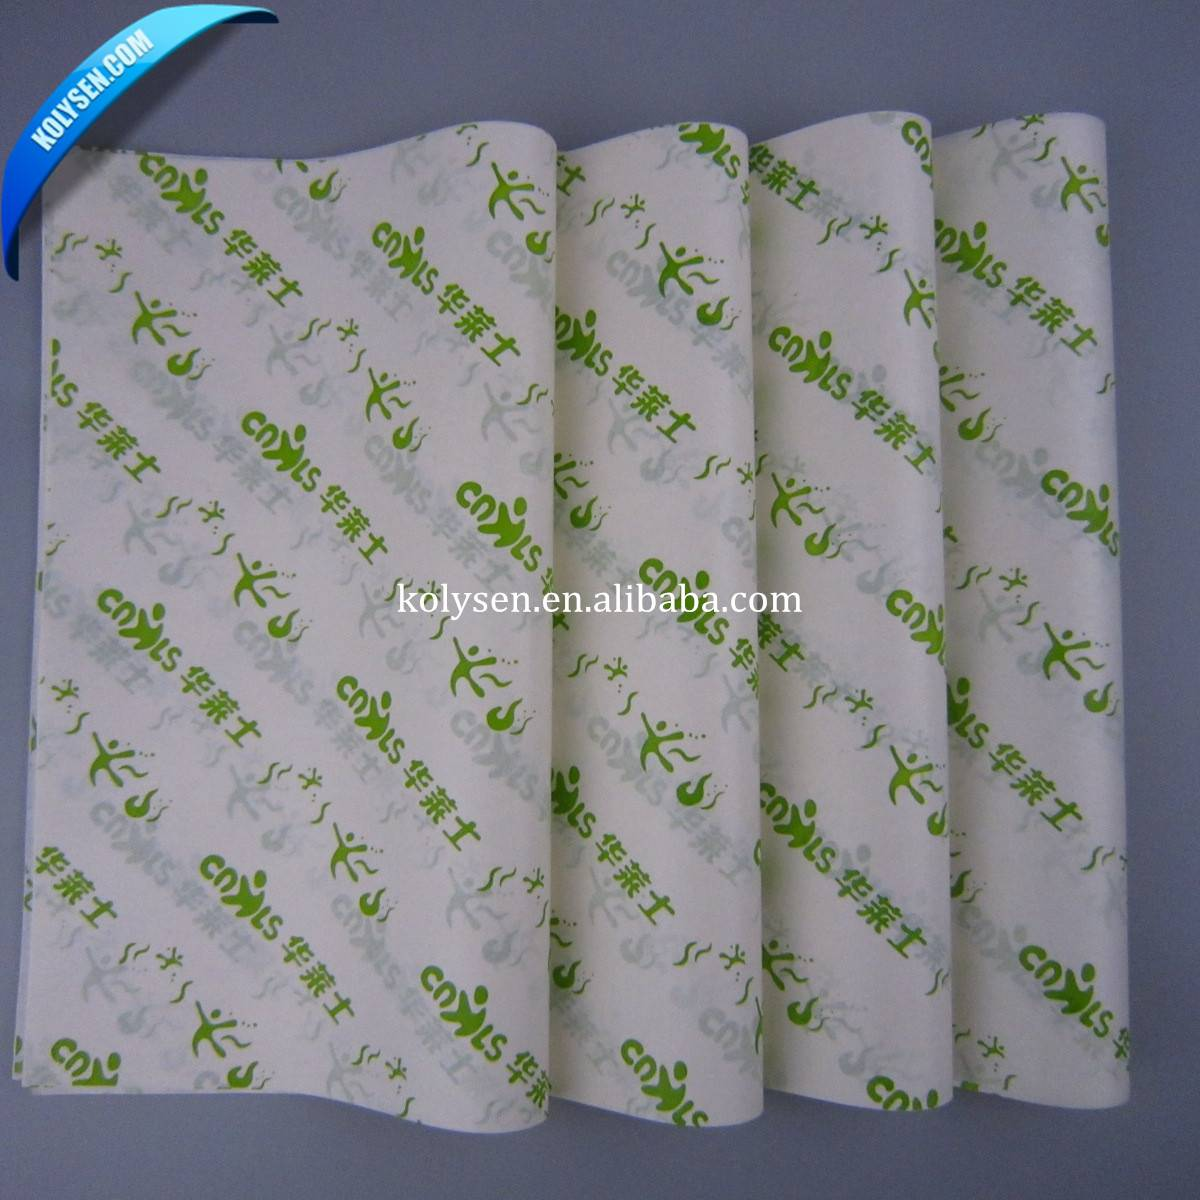 Best selling food grade greaseproof wrapping paper